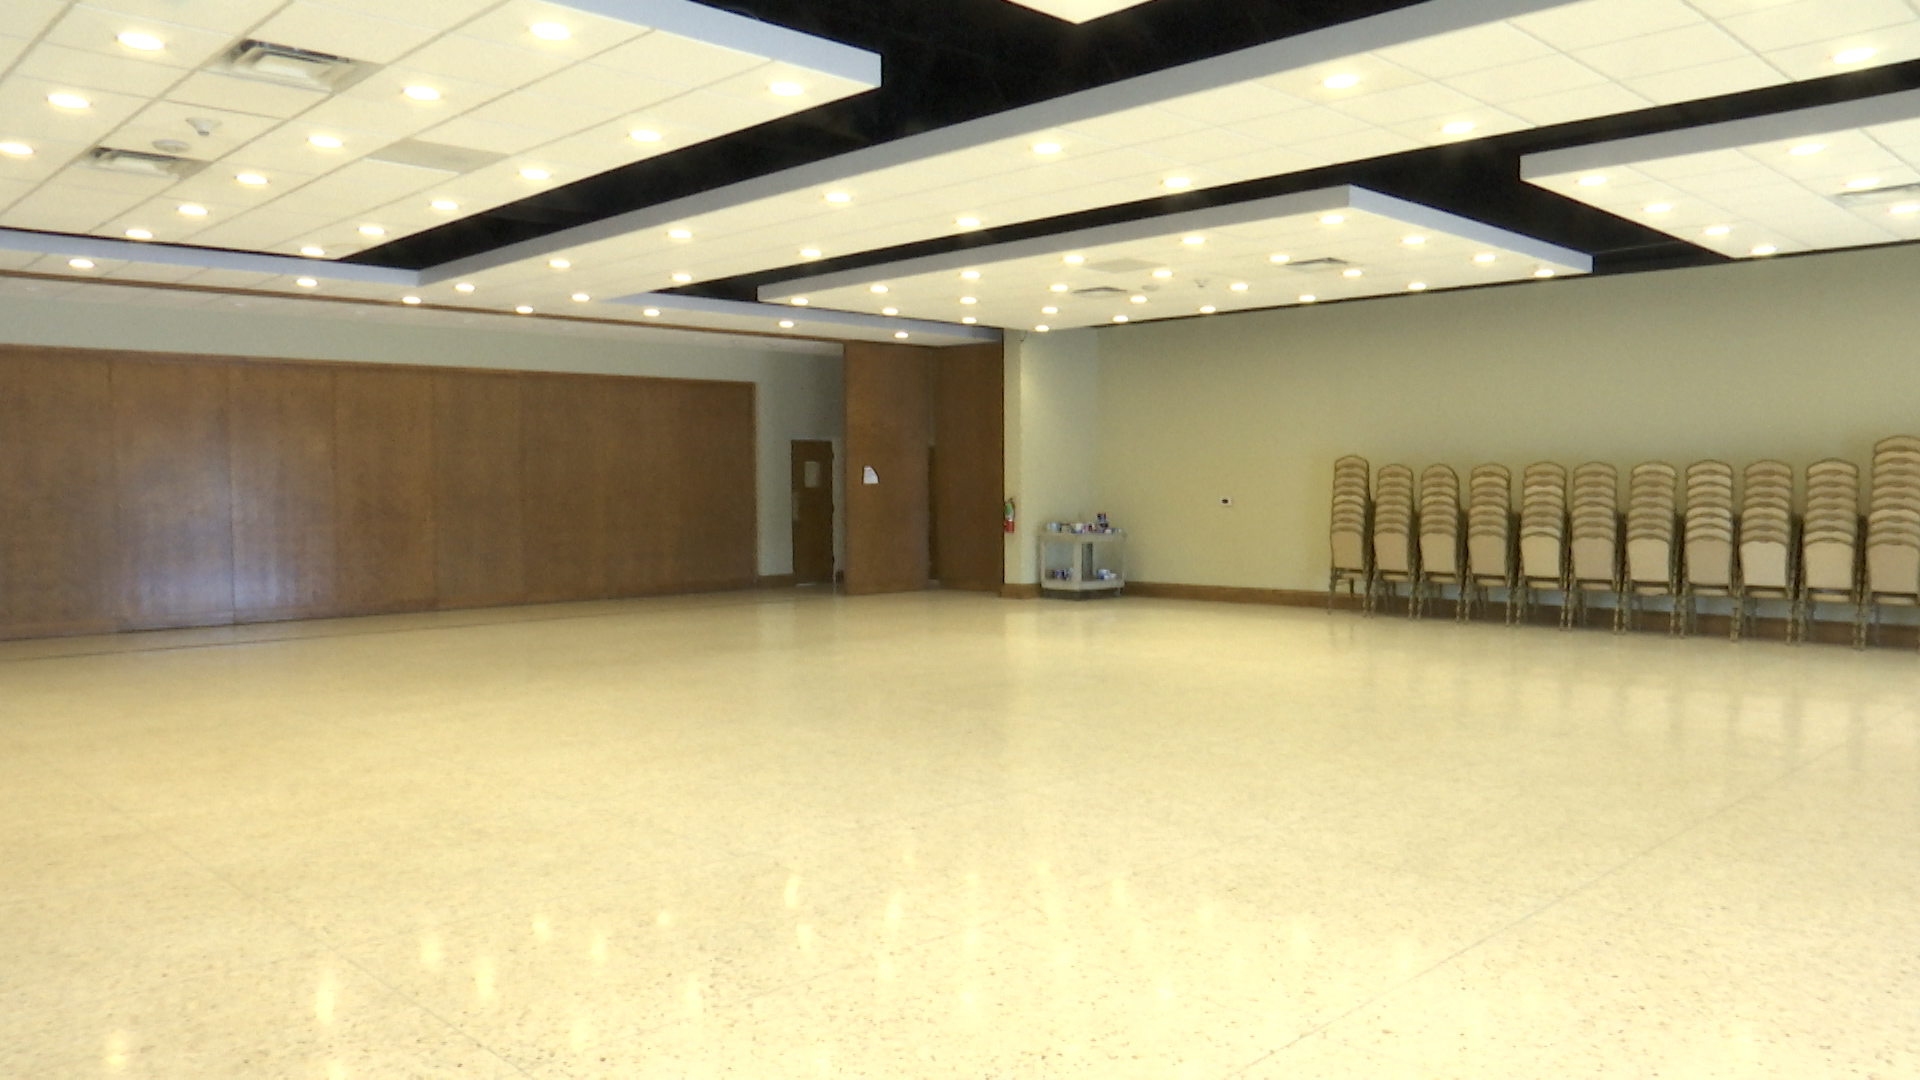 This time of year, The Forum in Wichita Falls is normally buzzing with weddings, proms, baby showers and more, but like everything else, COVID-19 has put a stop to those plans.